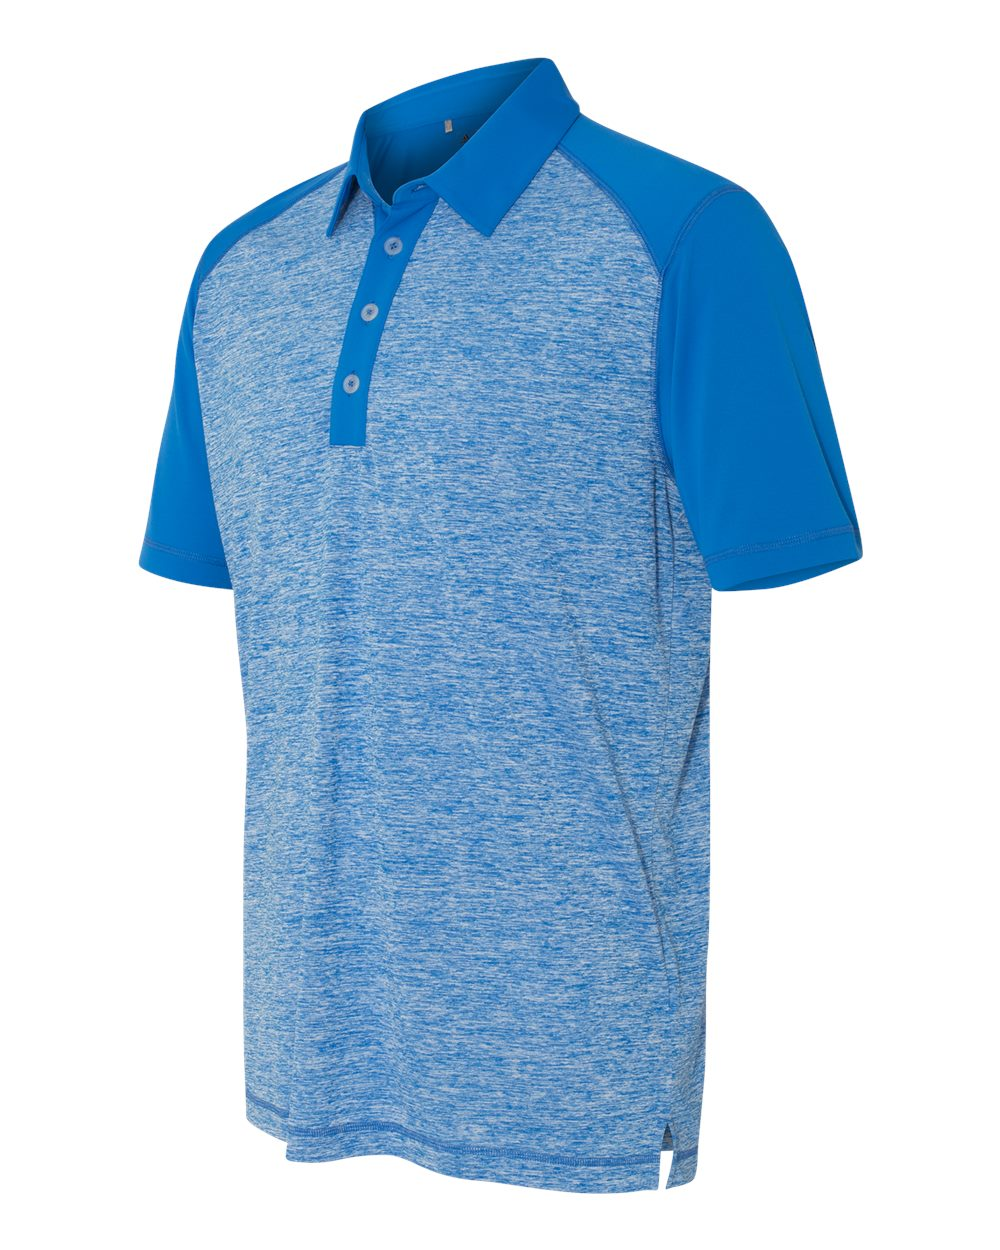 Adidas A145 - Golf Heather Colorblock Polo